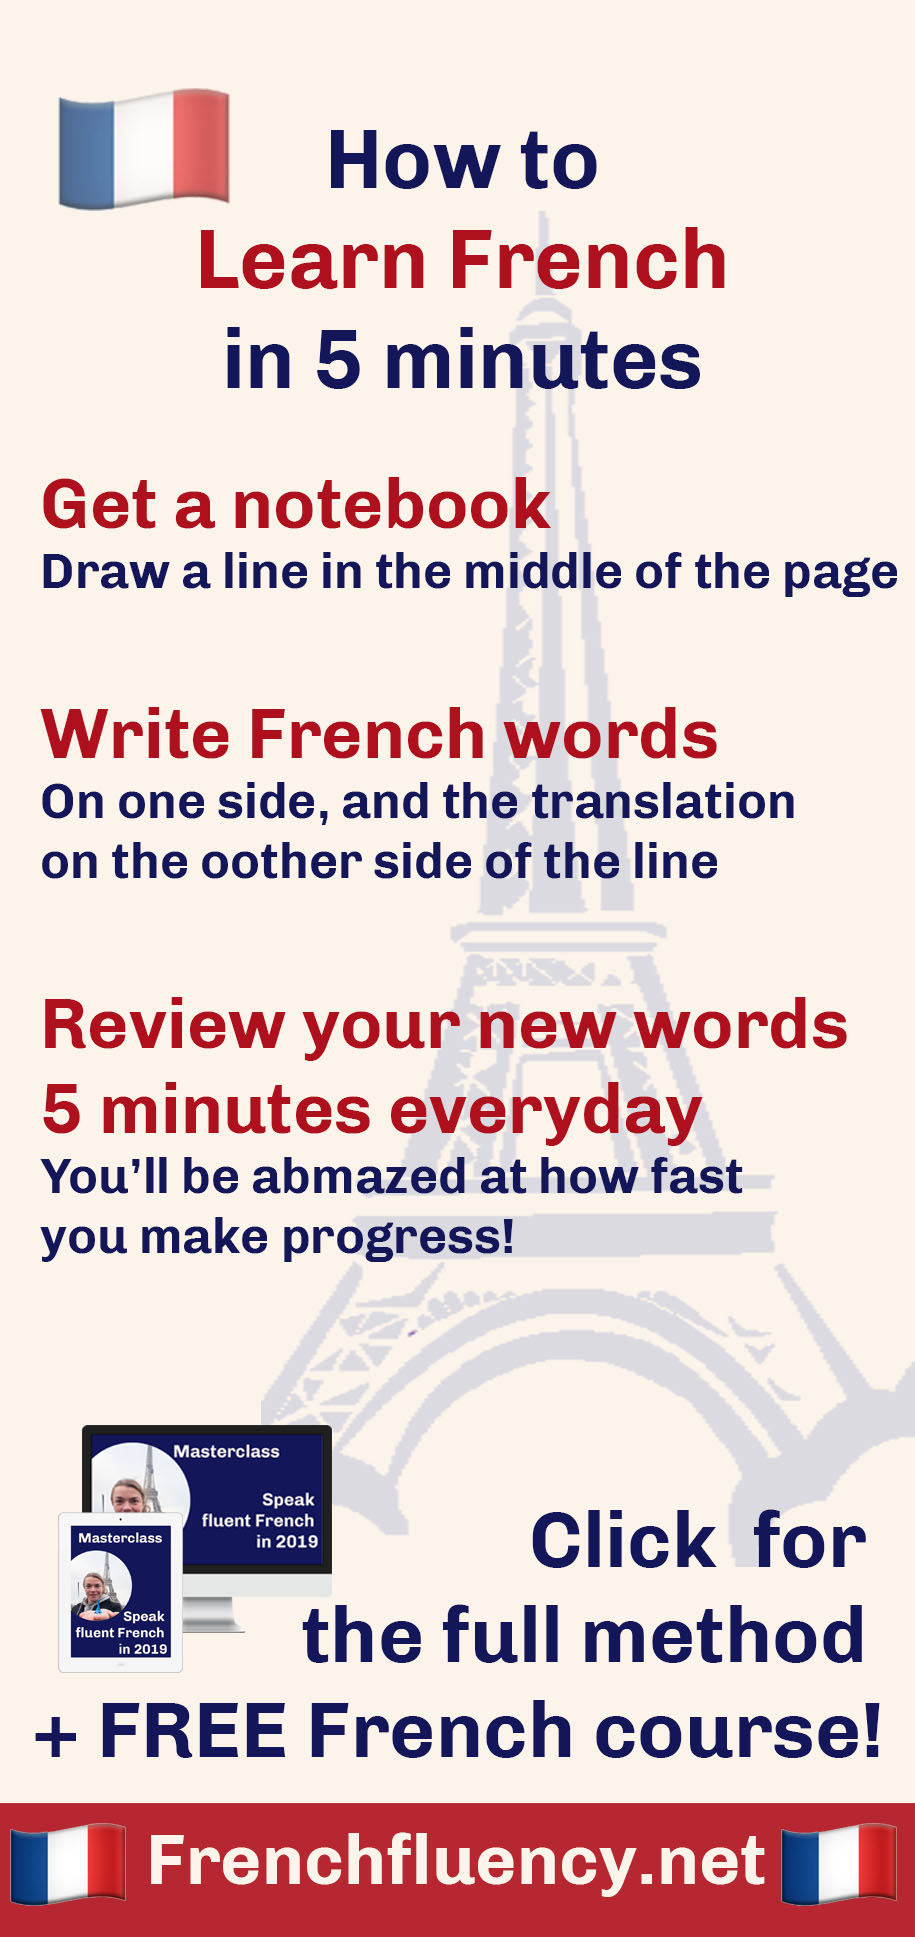 Want to learn French super fast? This simple French learning habit will multiply your progress. Review your vocabulary for just five minutes a day and watch your French speaking skills skyrocket.  #learnfrench #frenchlearning #LearnFrenchFast #fluentfrench #frenchvocabulary #frenchgrammar